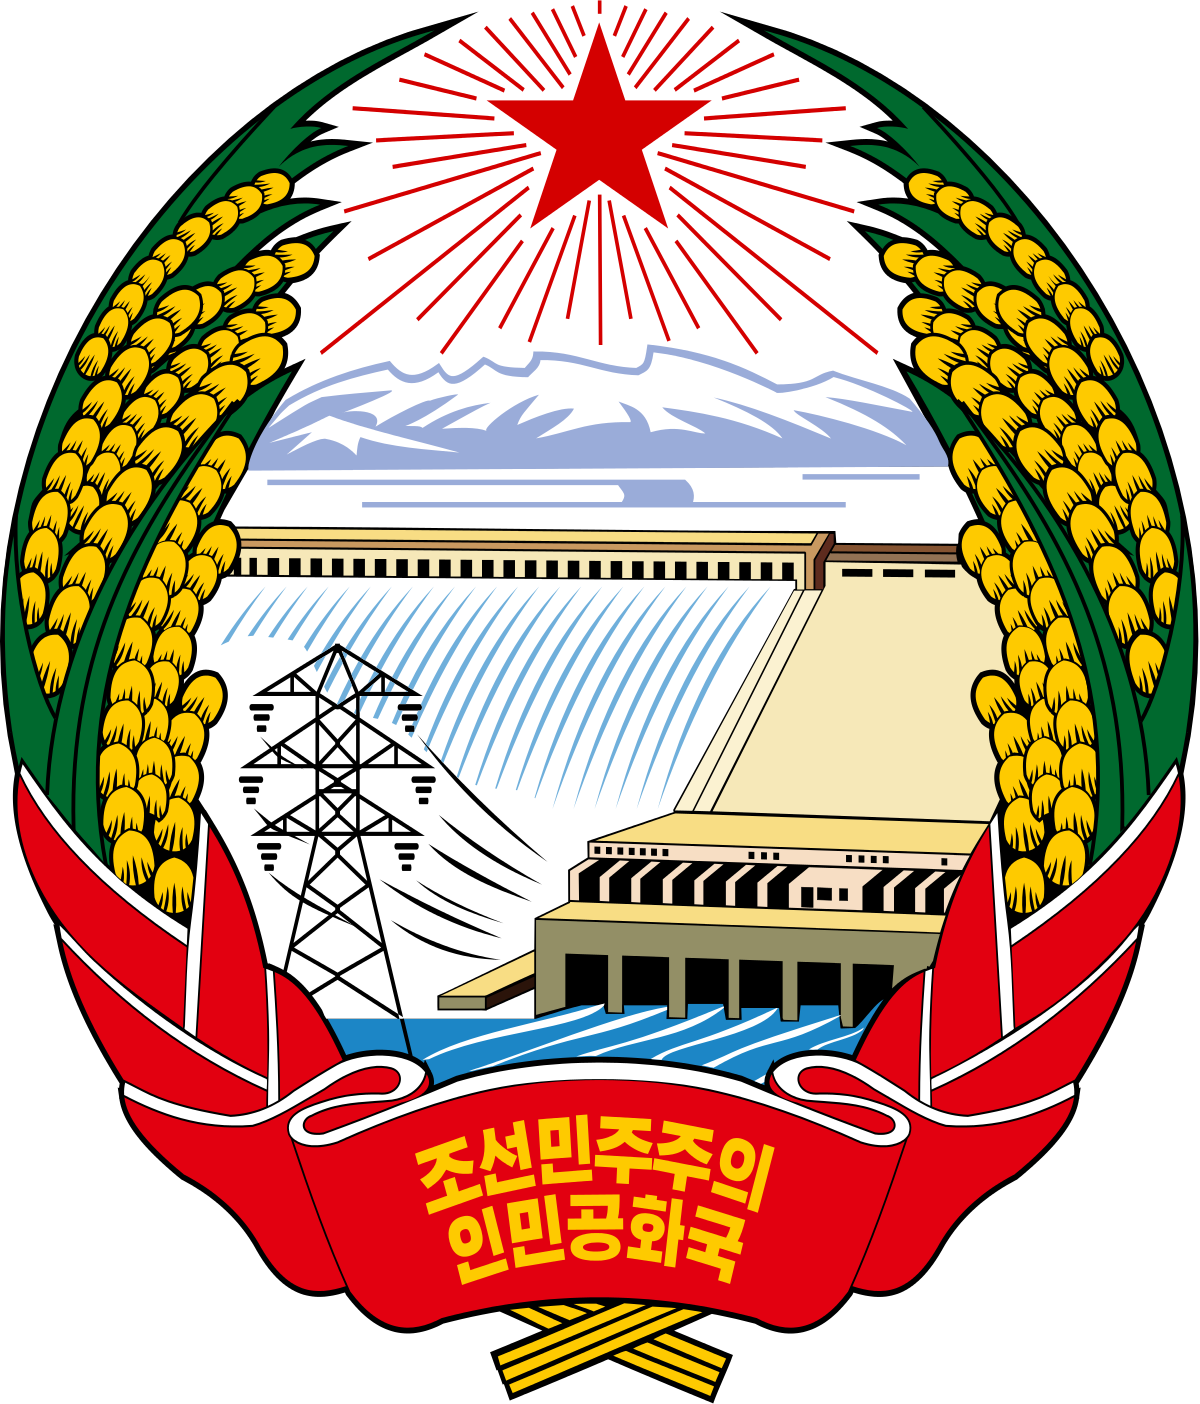 The Emblem of North Korea